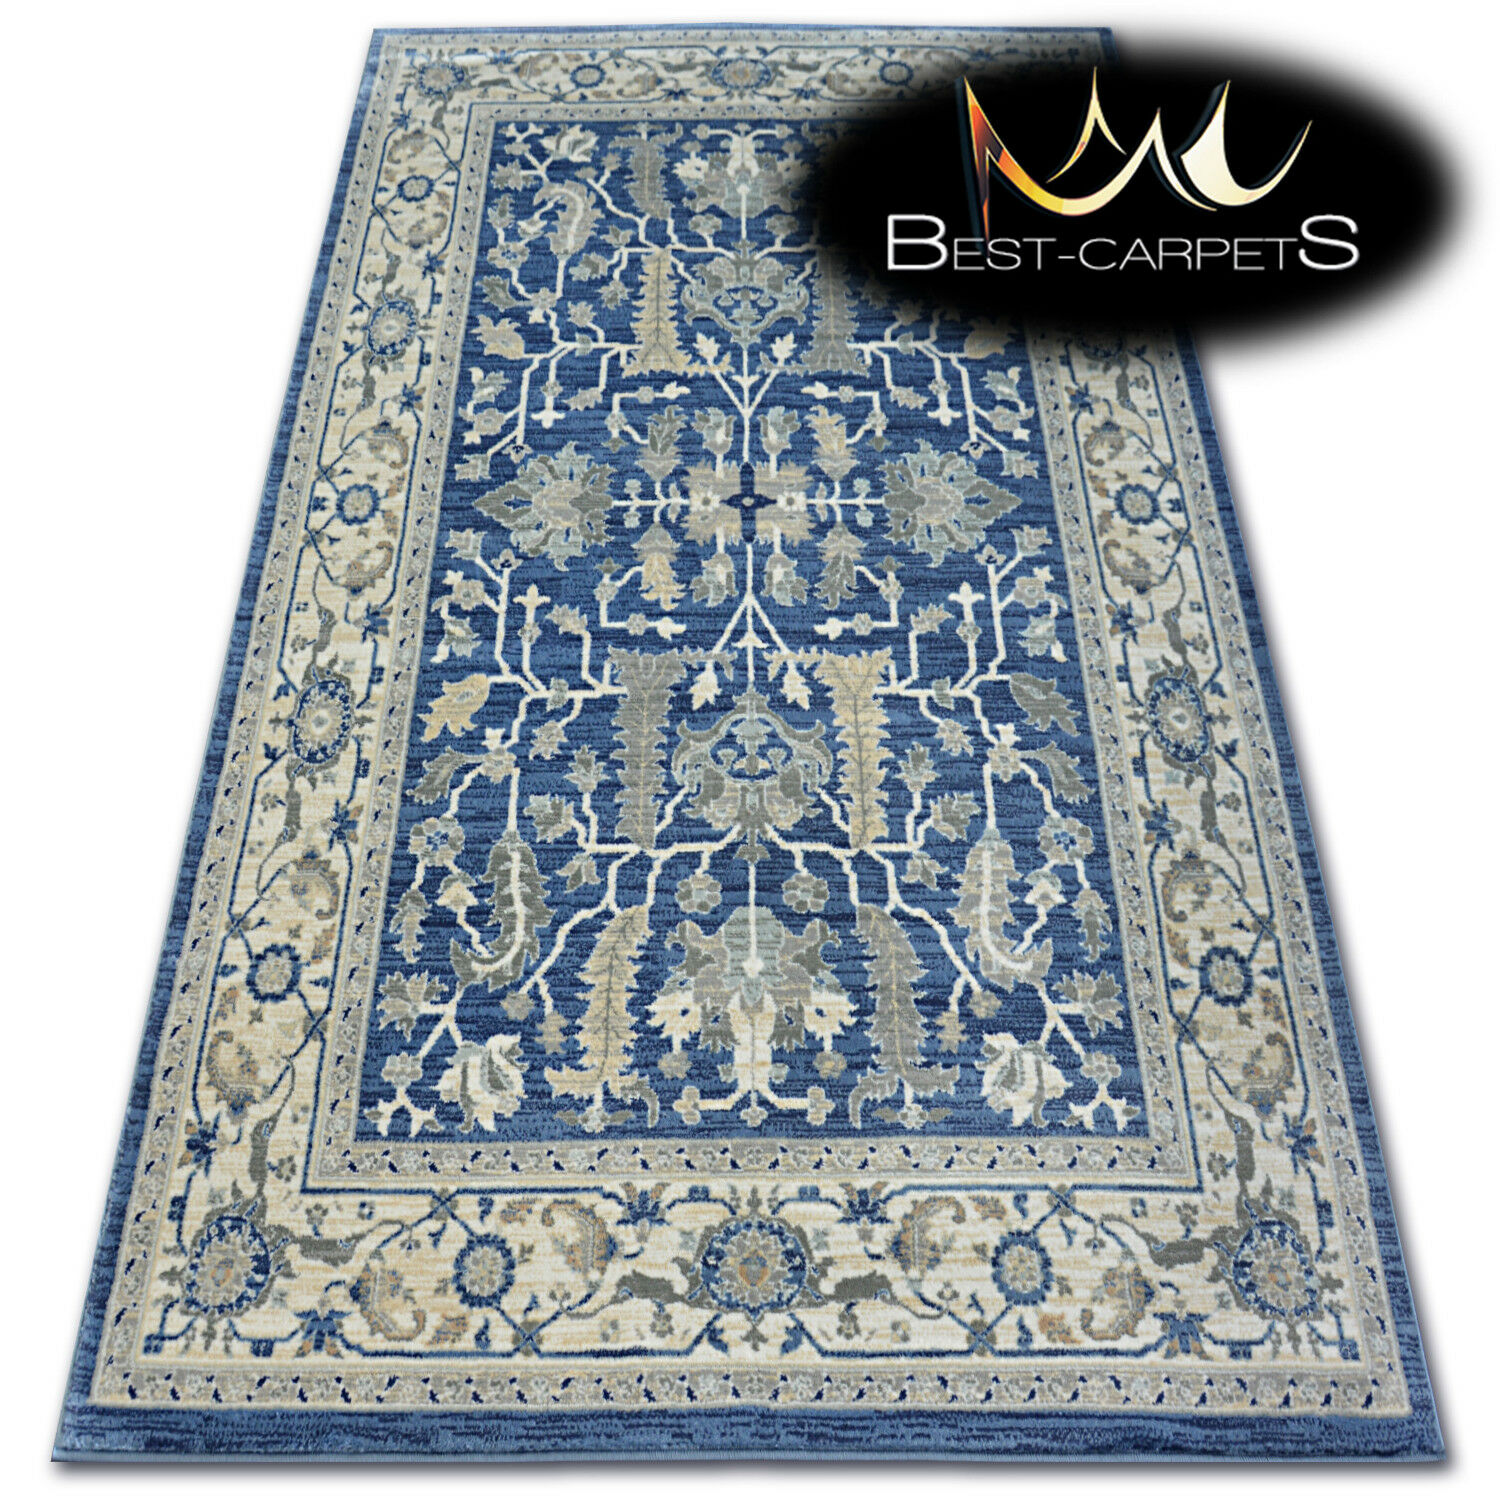 AMAZING THICK MODERN RUGS Silber W7039 Flowers Navy LARGE Größe BEST-CARPETS